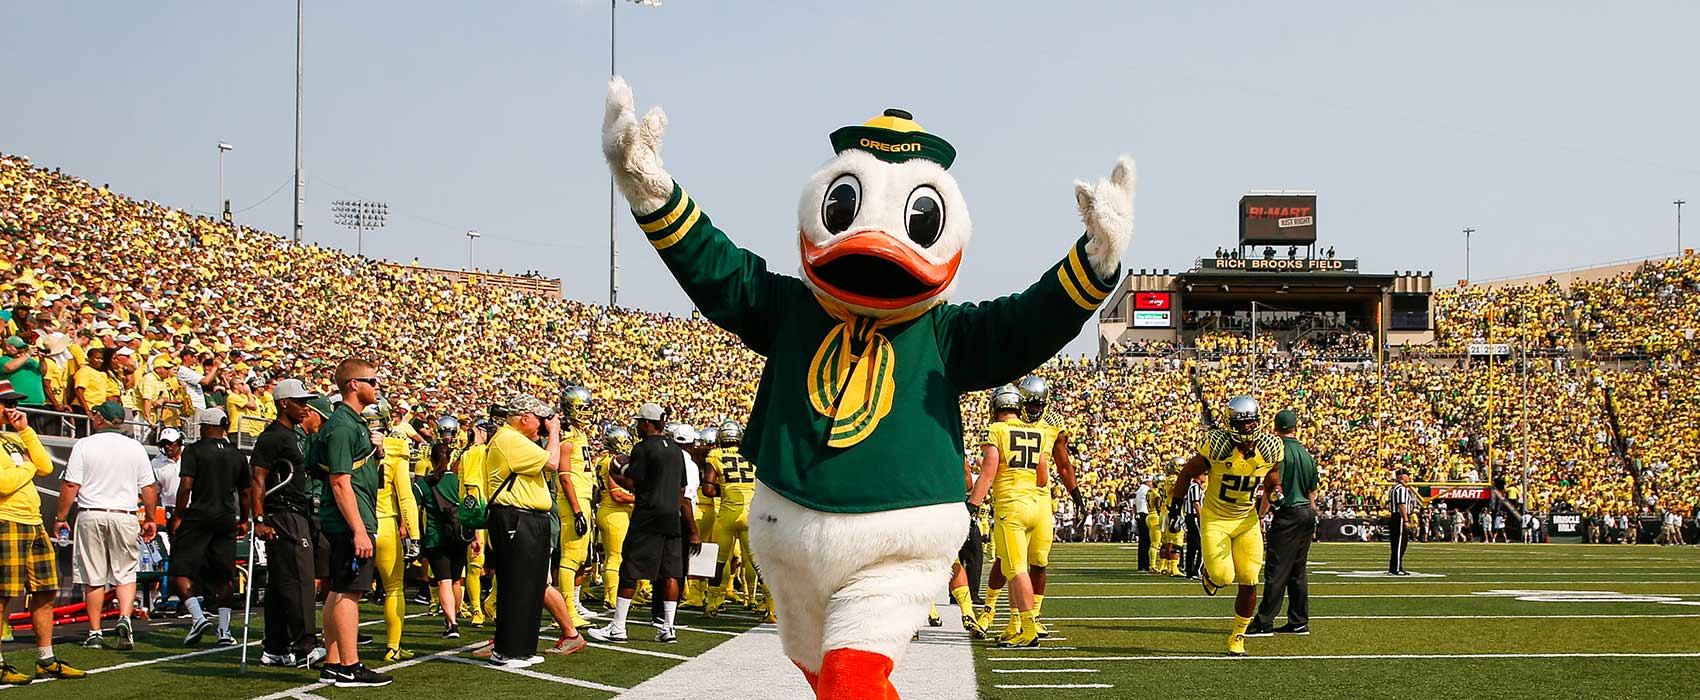 the duck - university of oregon athletics